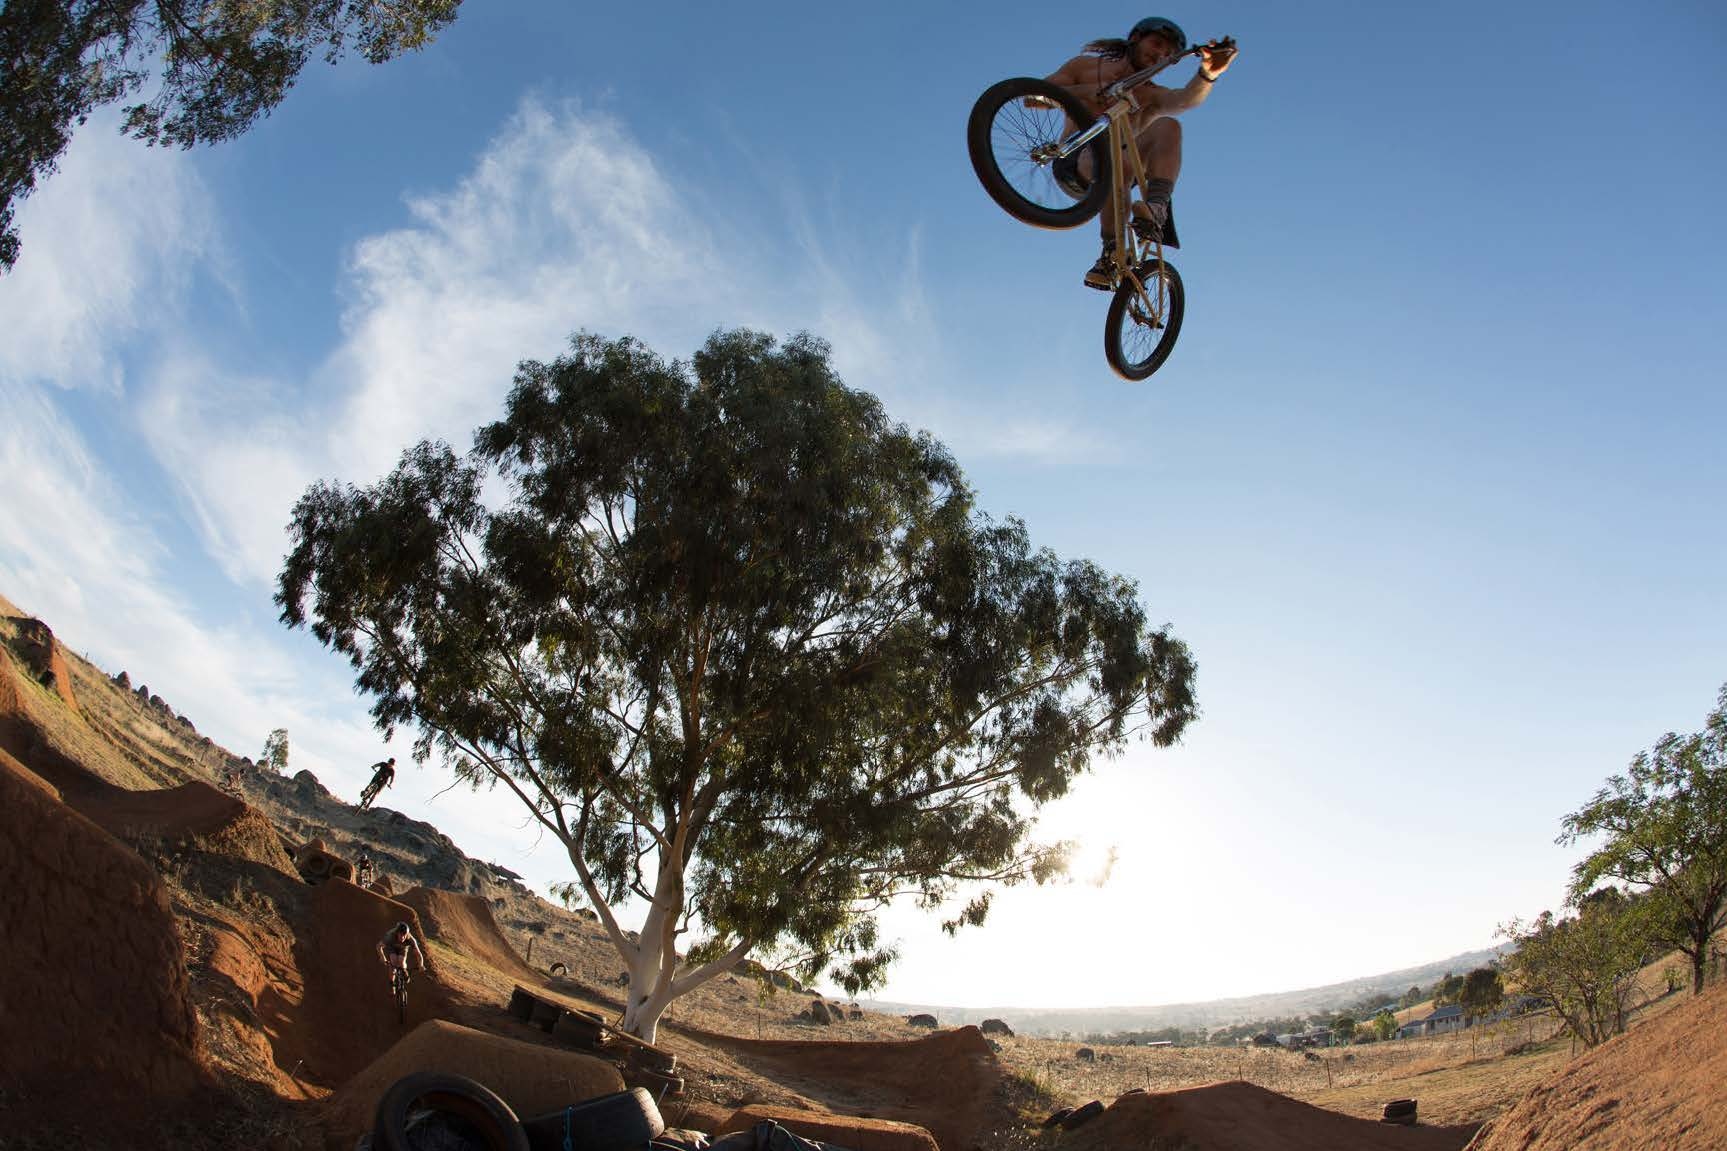 Chris Harti bmx bike check riding bmx trails